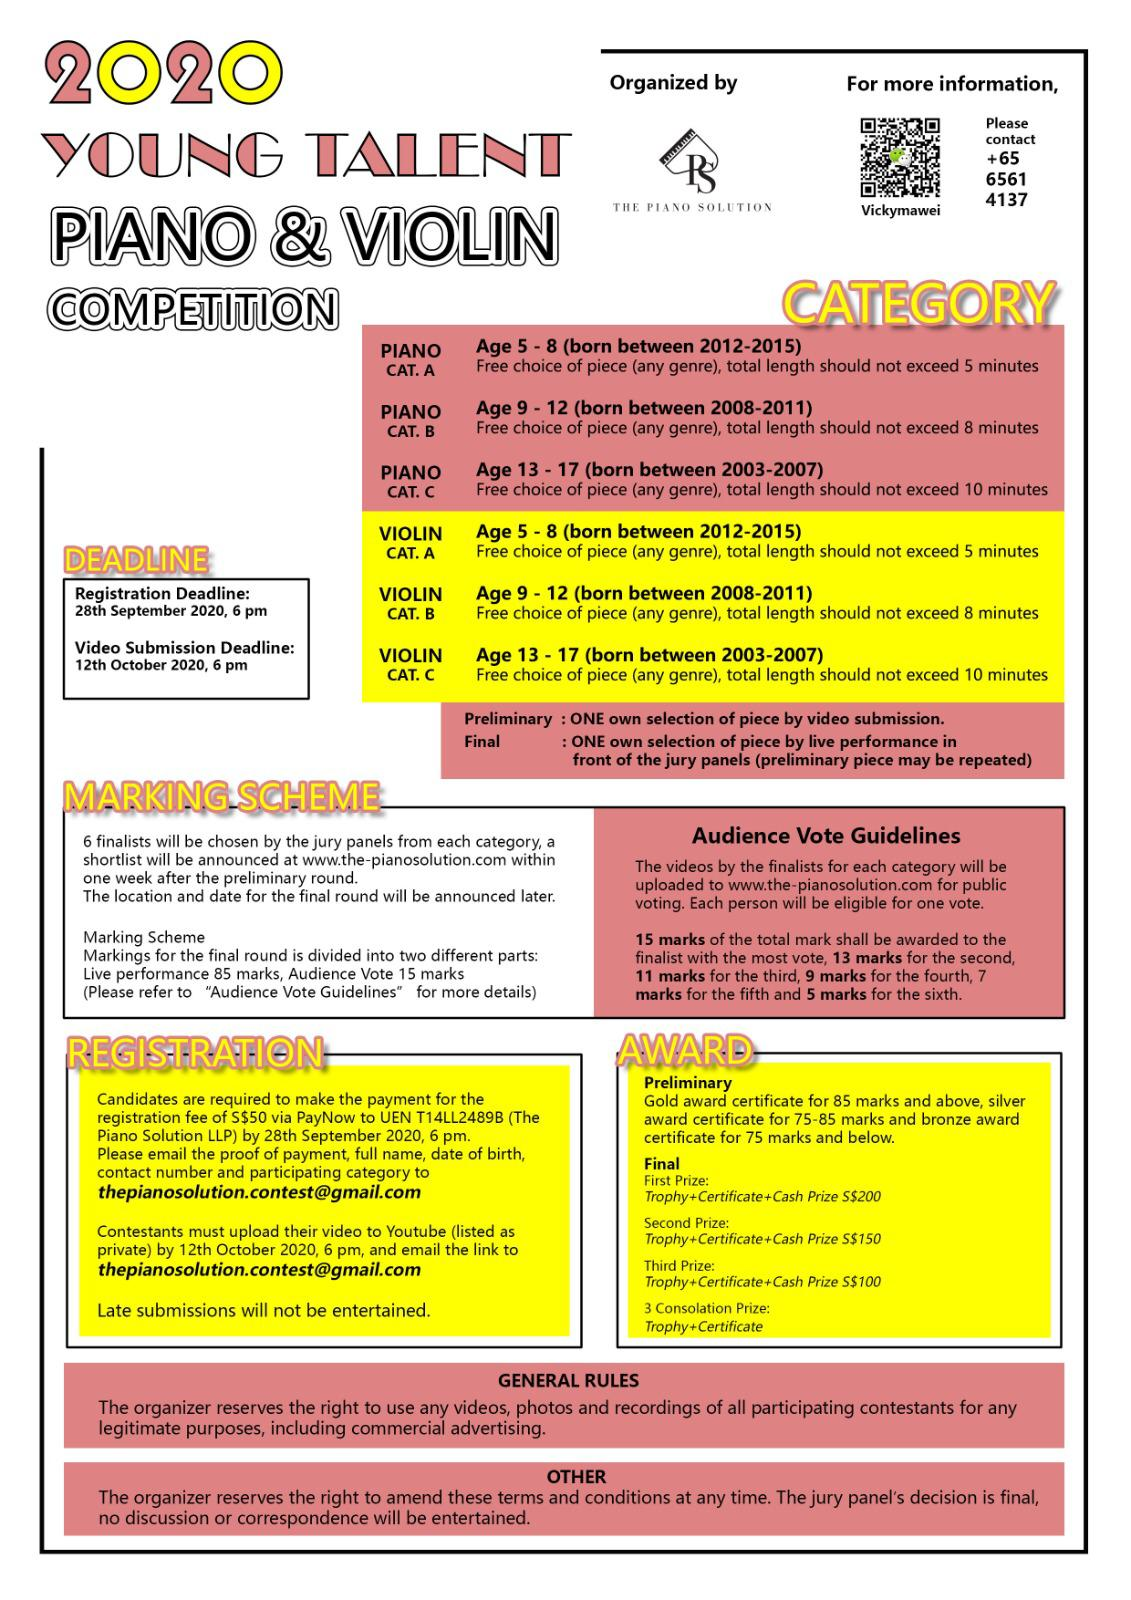 2020 YOUNG TALENT PIANO & VIOLIN COMPETITION